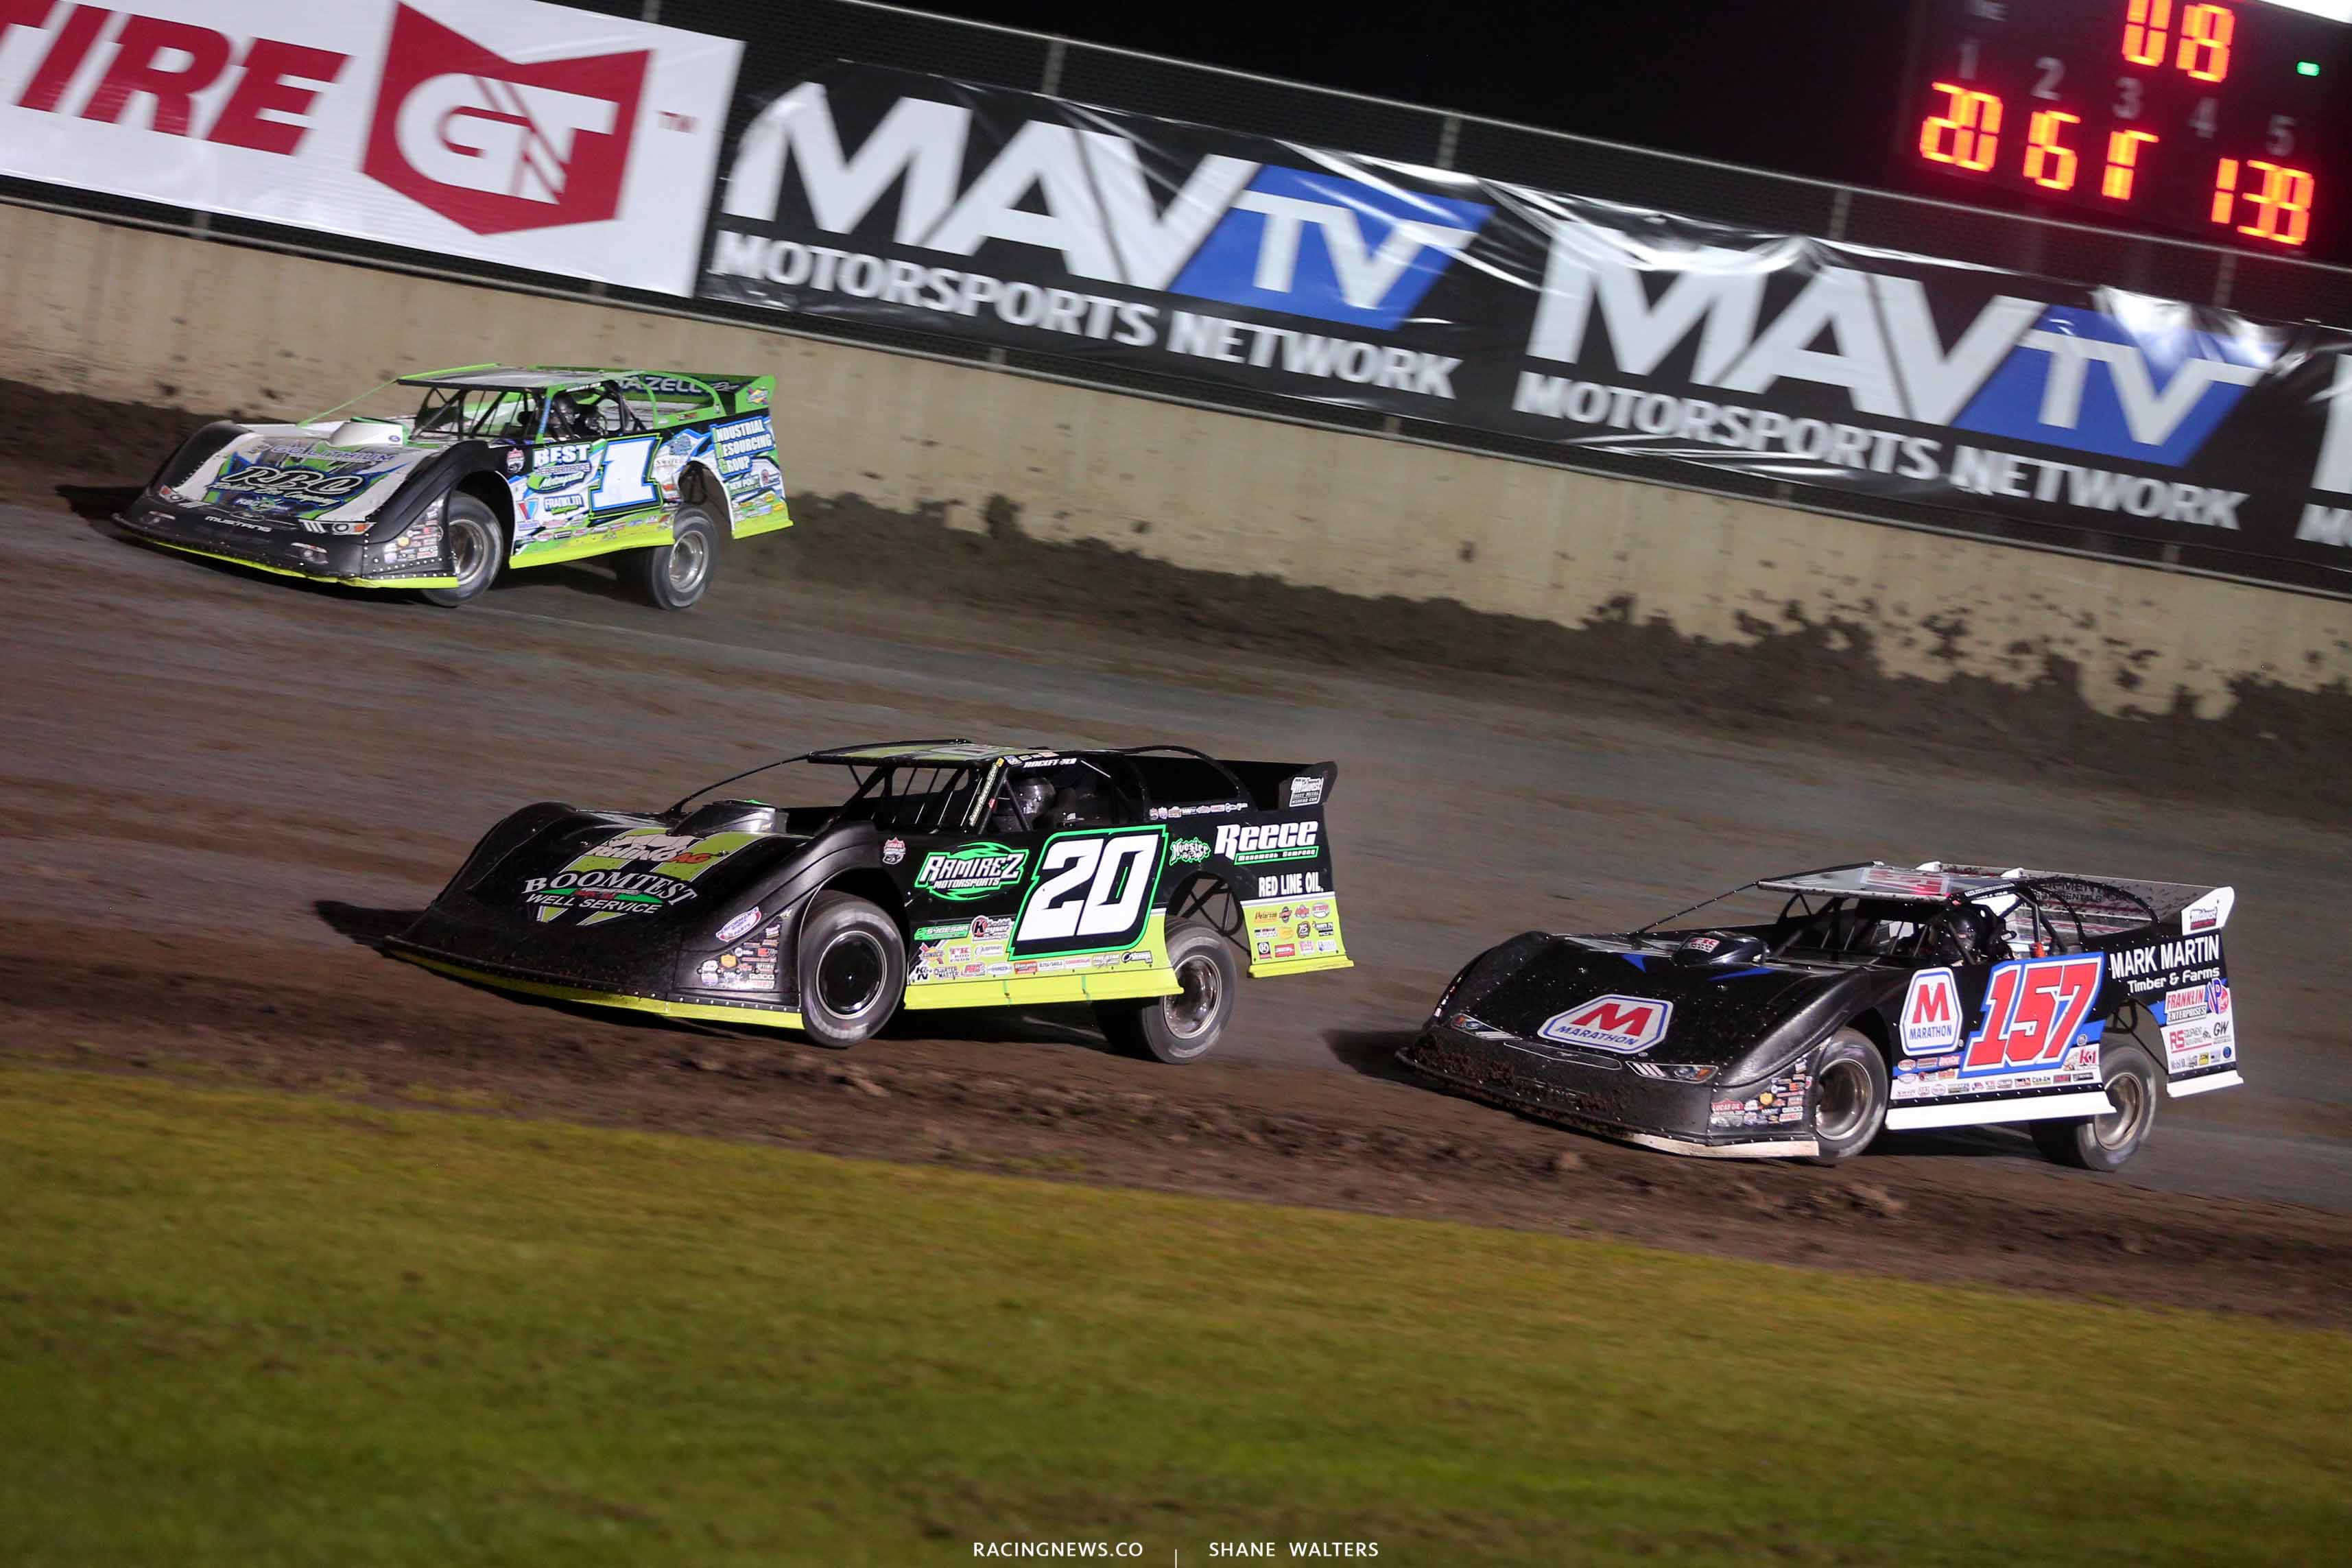 Tyler Erb, Jimmy Owens and Mike Marlar at Tri-City Speedway - Lucas Oil Dirt Series 8679